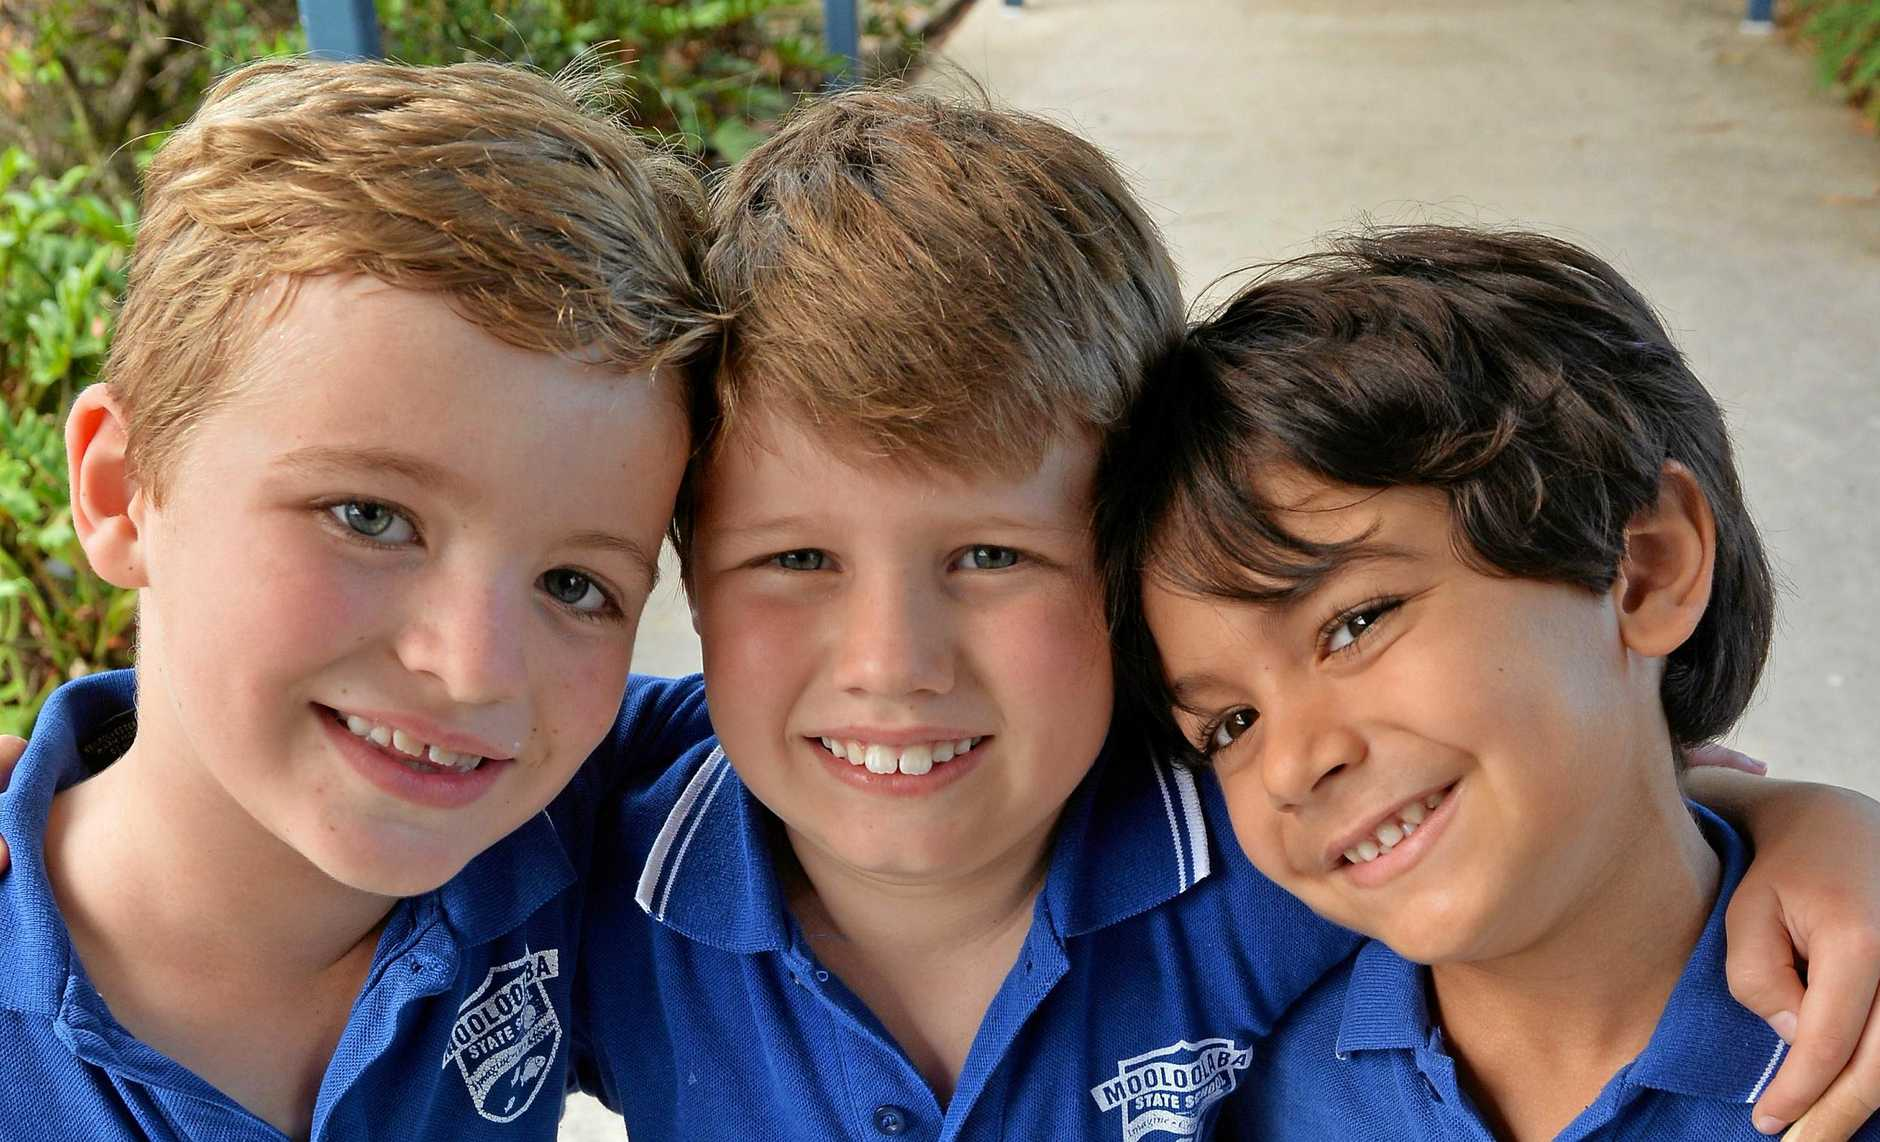 Archie Griffiths (middle), 7 year old diagnosed with leukaemia. Out in support are his soccer team mates Archie Lutz and Archie Brown.